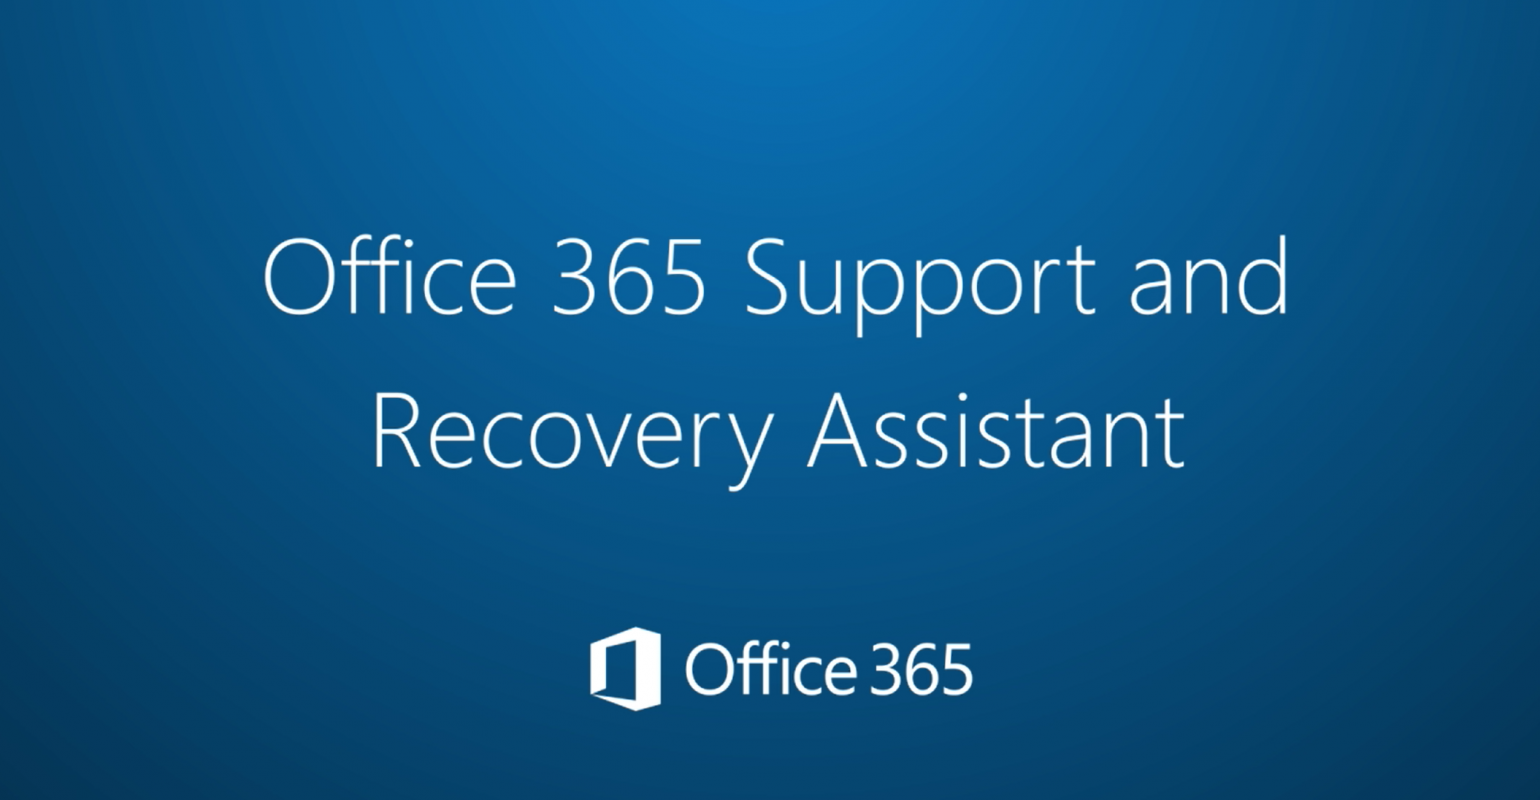 Office 365 | This app helps you troubleshoot issues with